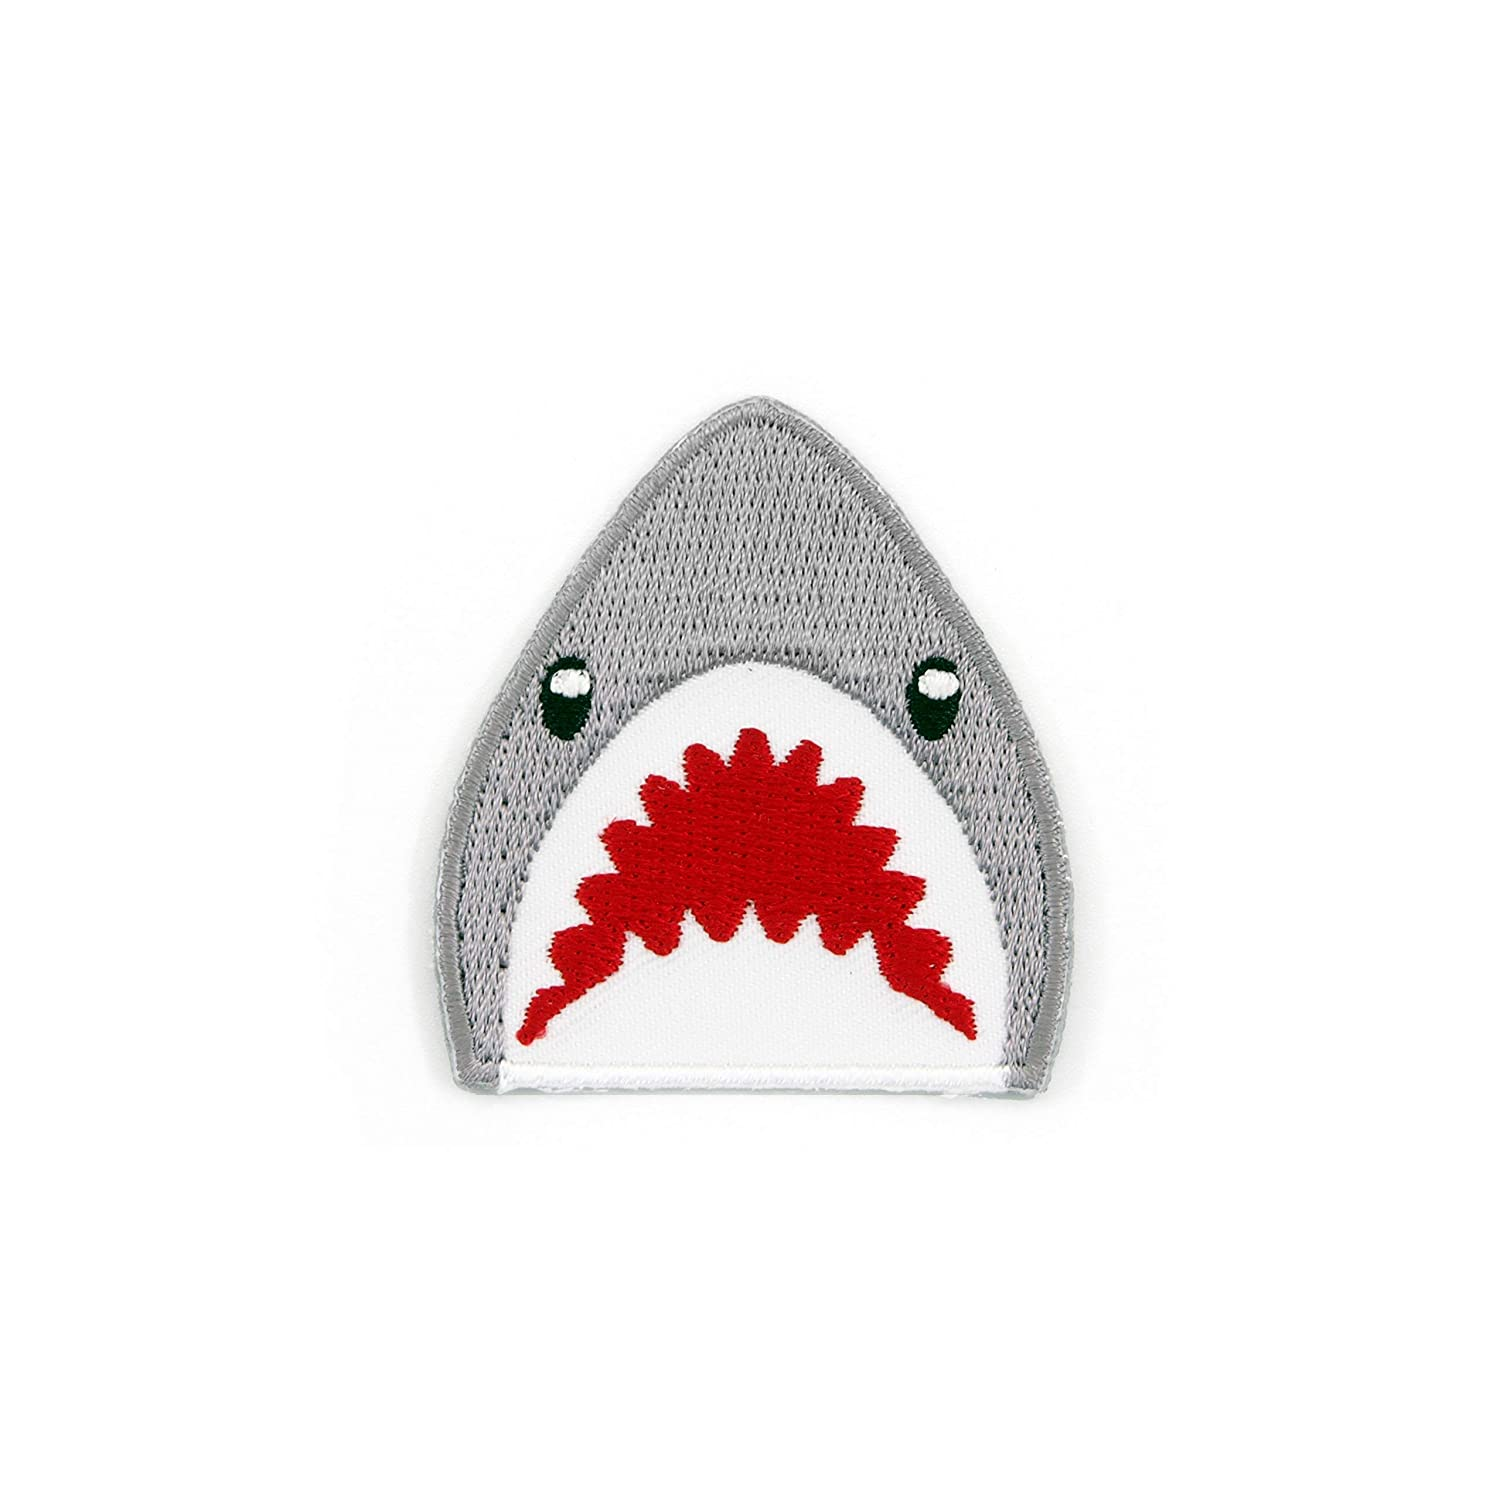 Winks For Days Shark Emoji Embroidered Iron-On Patch